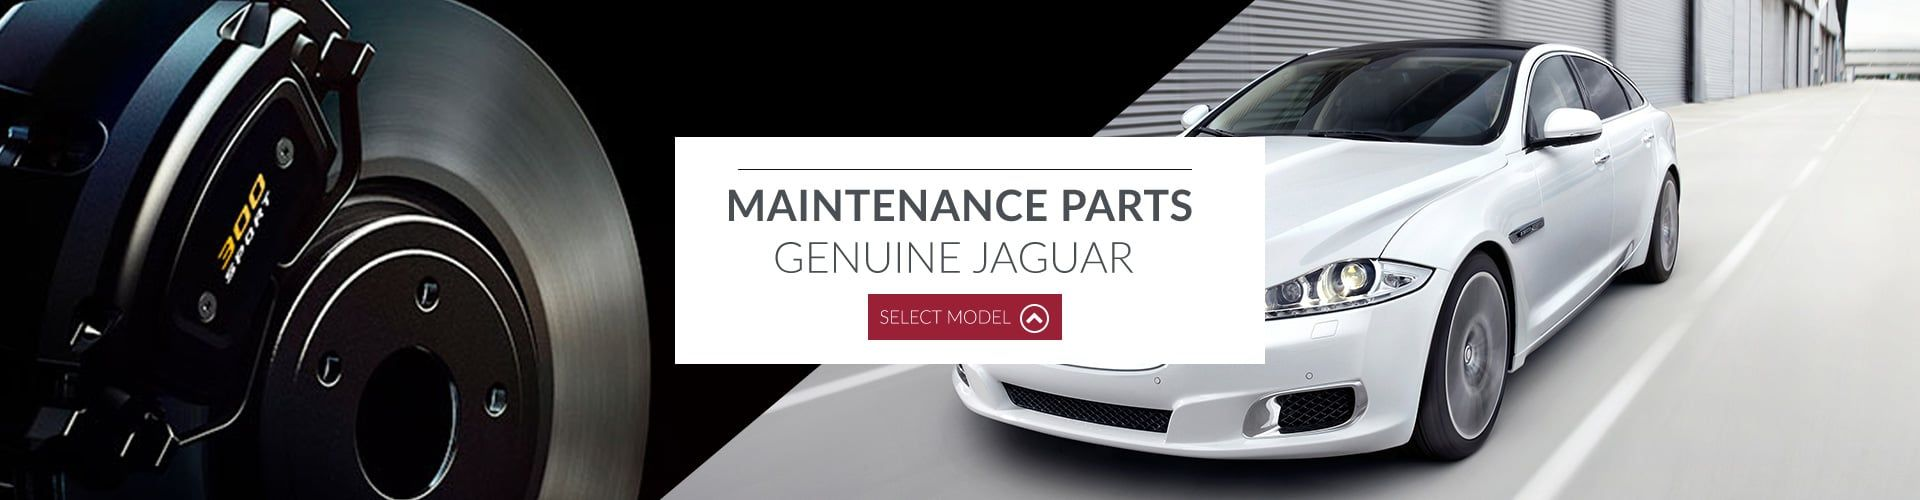 Jaguar Maintenance Parts